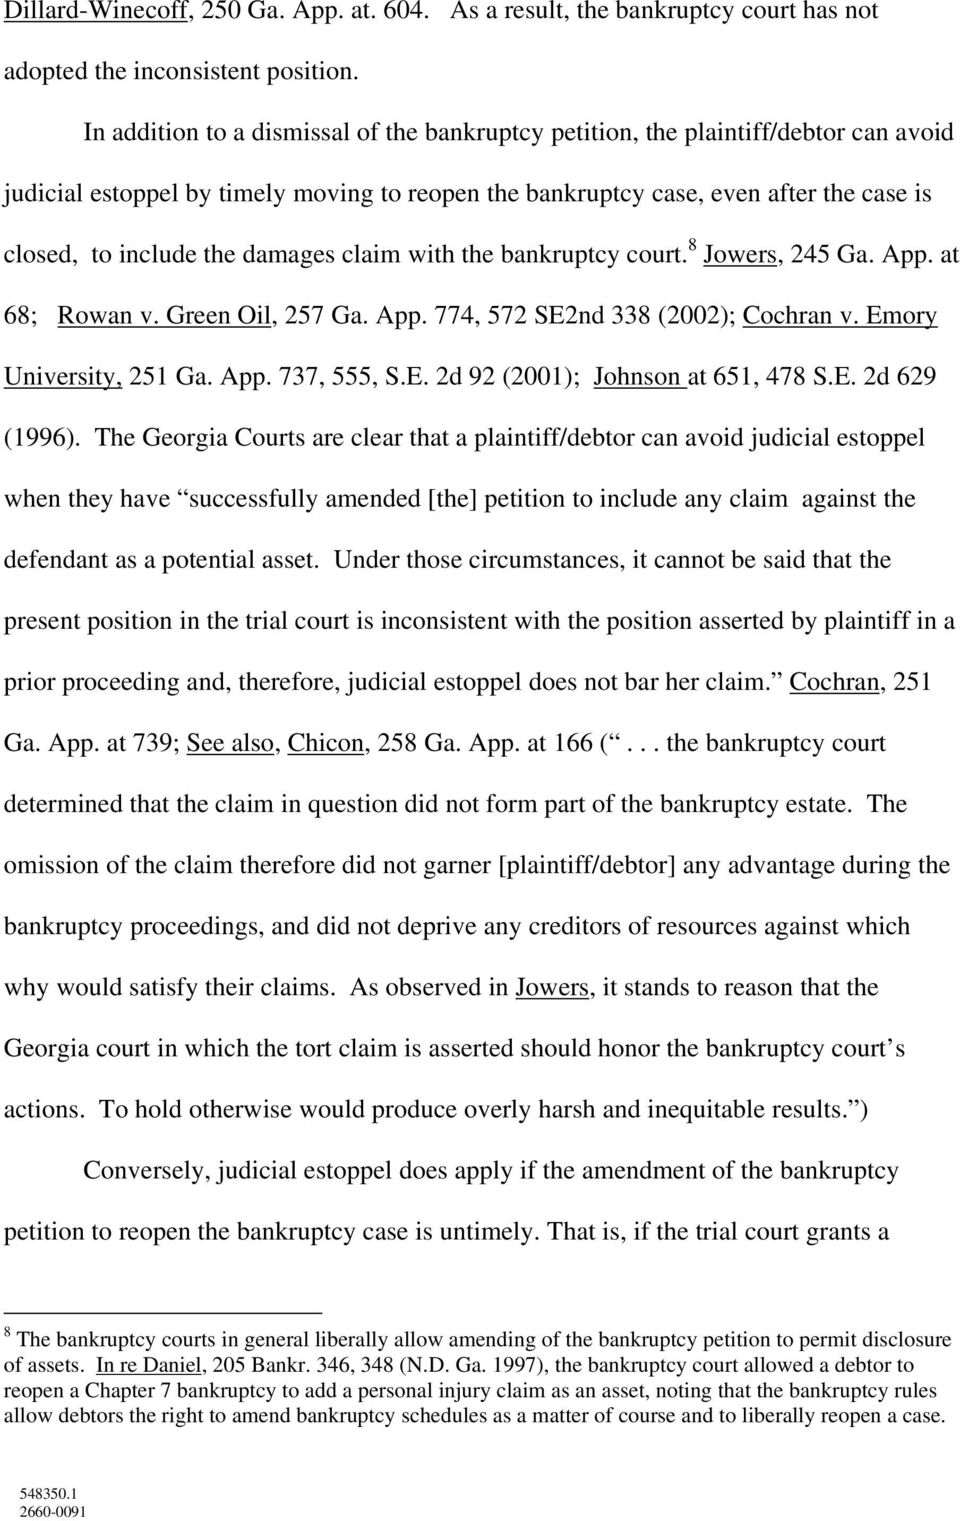 damages claim with the bankruptcy court. 8 Jowers, 245 Ga. App. at 68; Rowan v. Green Oil, 257 Ga. App. 774, 572 SE2nd 338 (2002); Cochran v. Emory University, 251 Ga. App. 737, 555, S.E. 2d 92 (2001); Johnson at 651, 478 S.